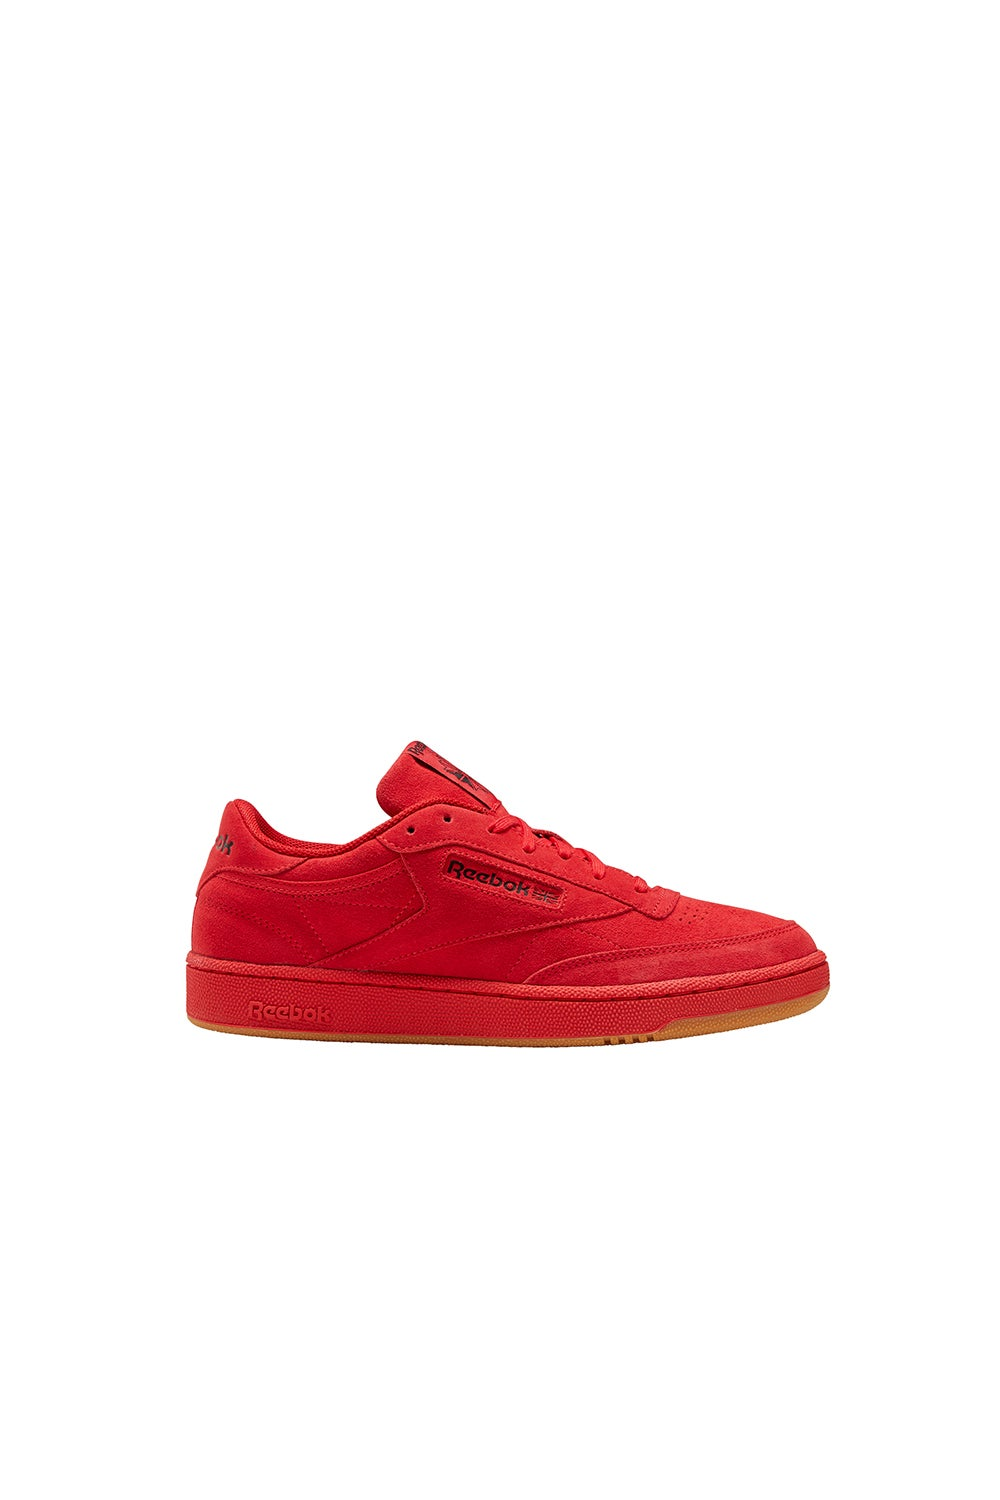 Reebok Club C 85 Vector Red